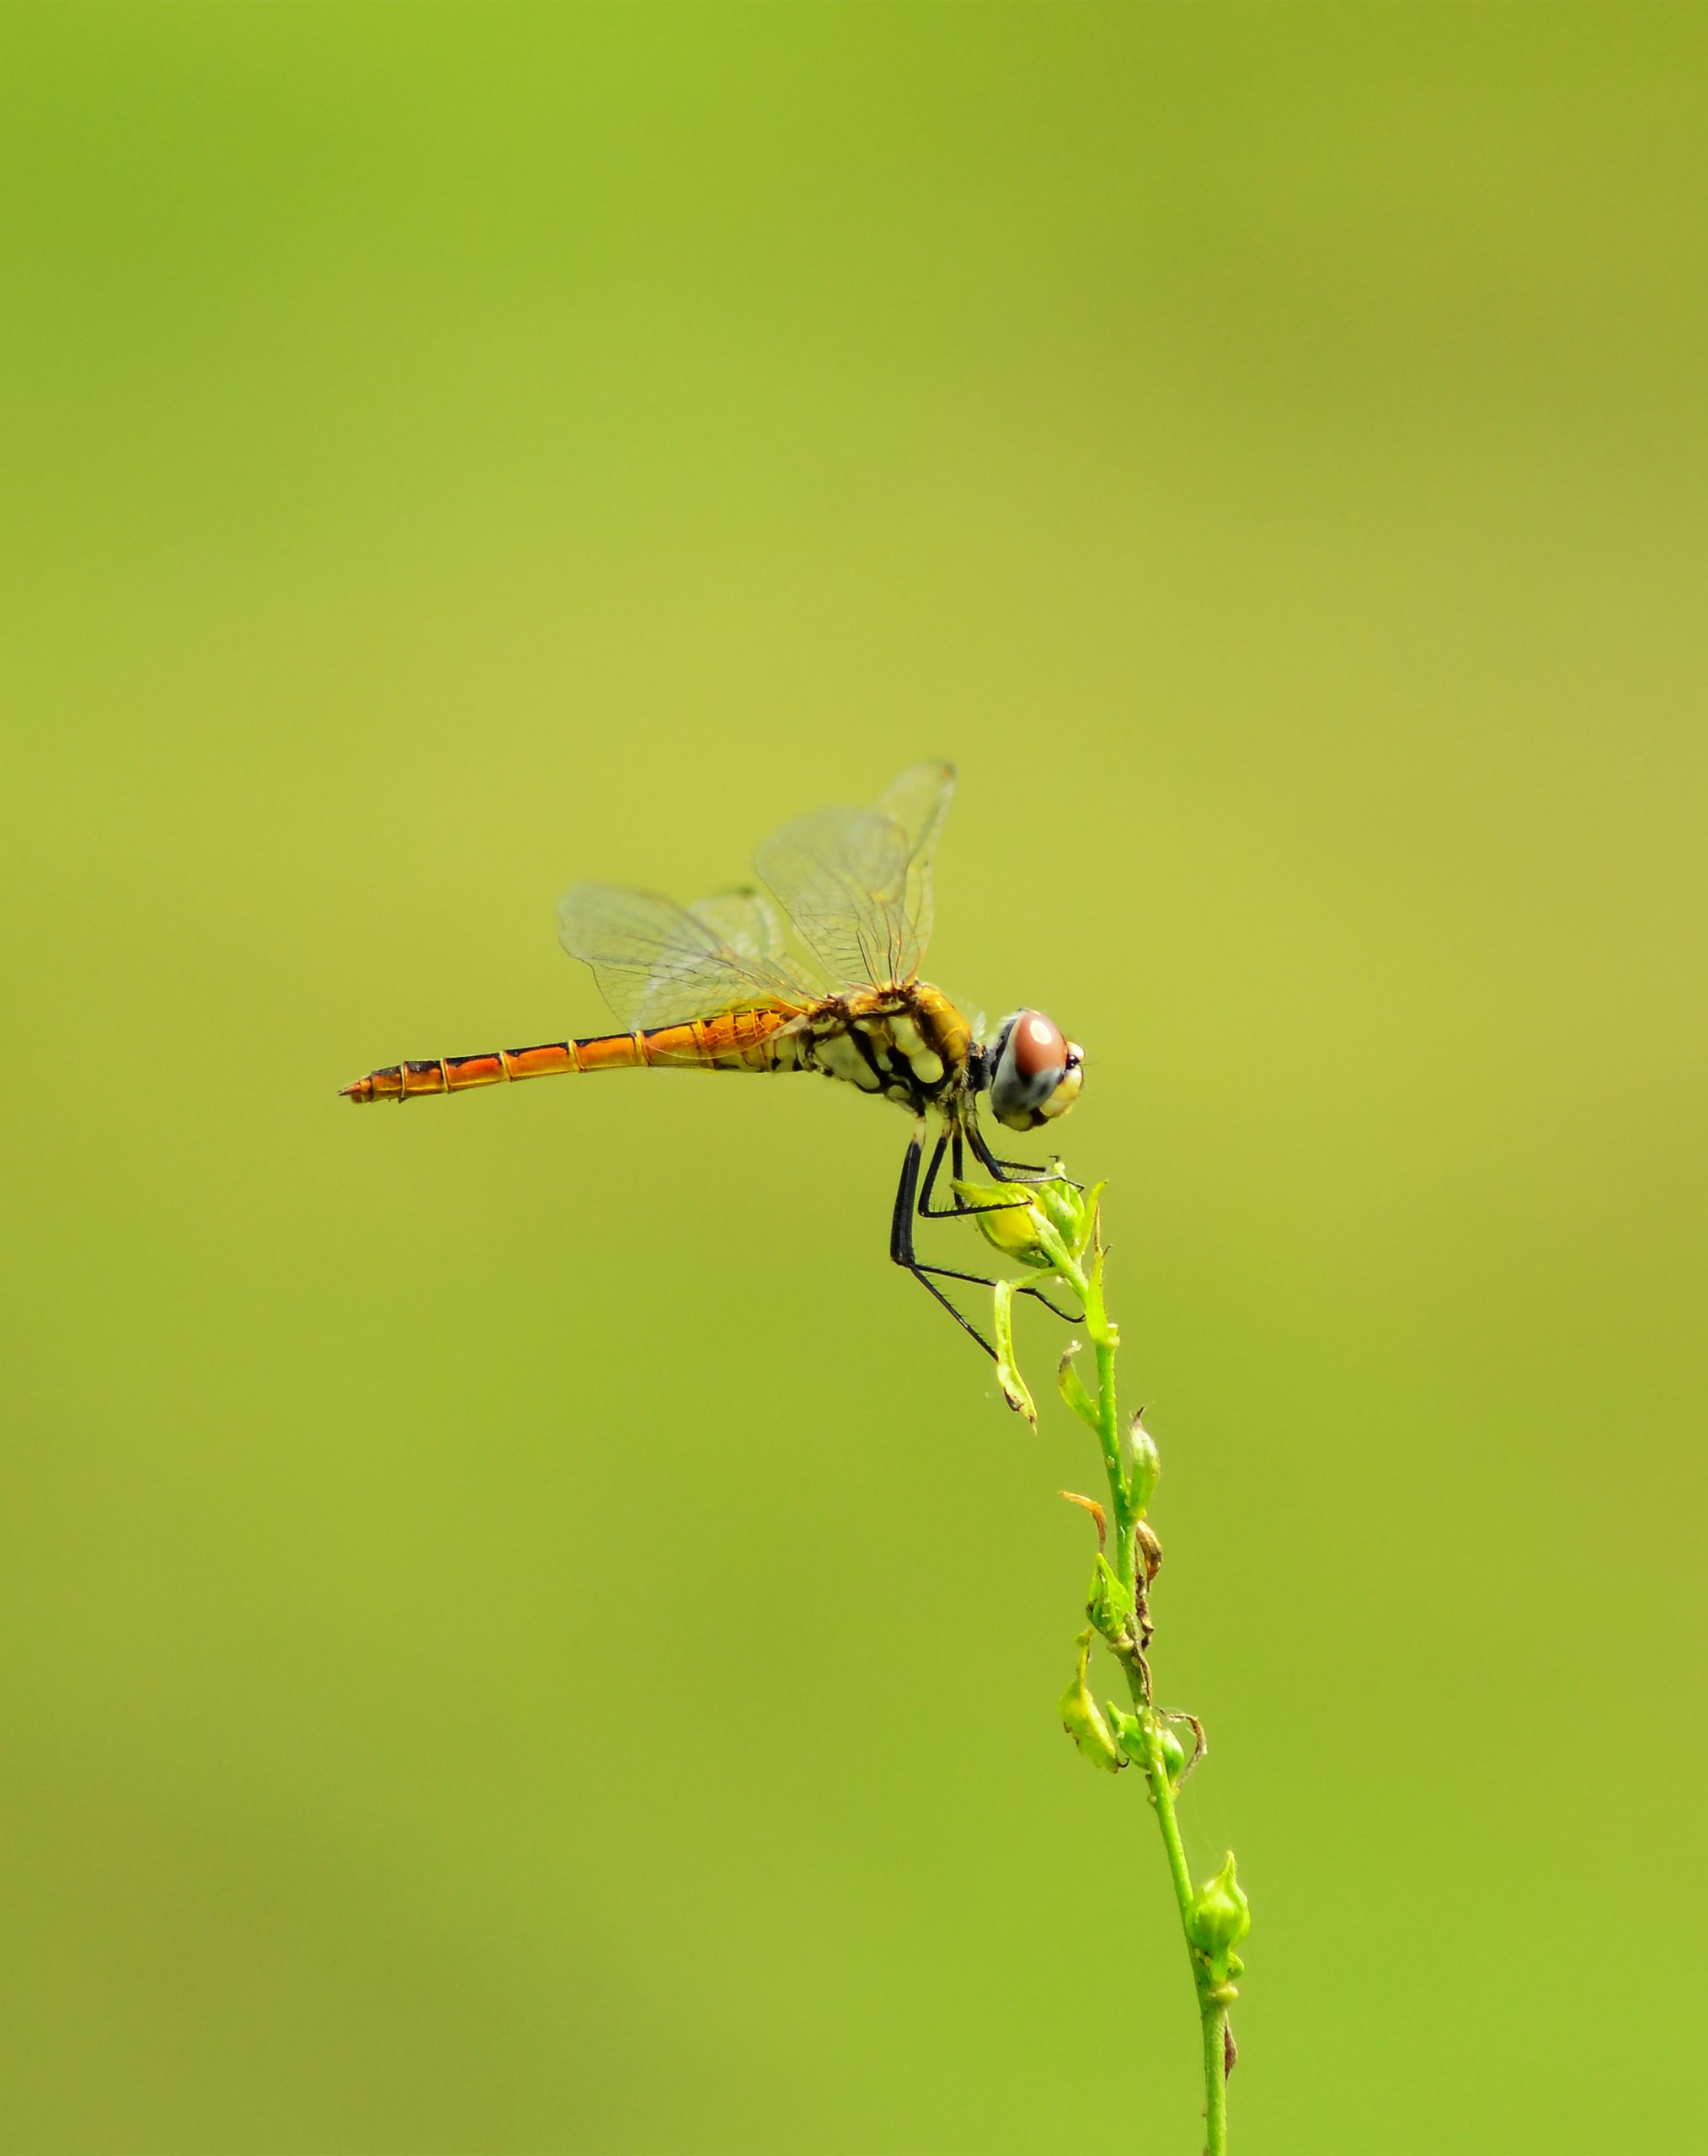 Dragon fly on plant